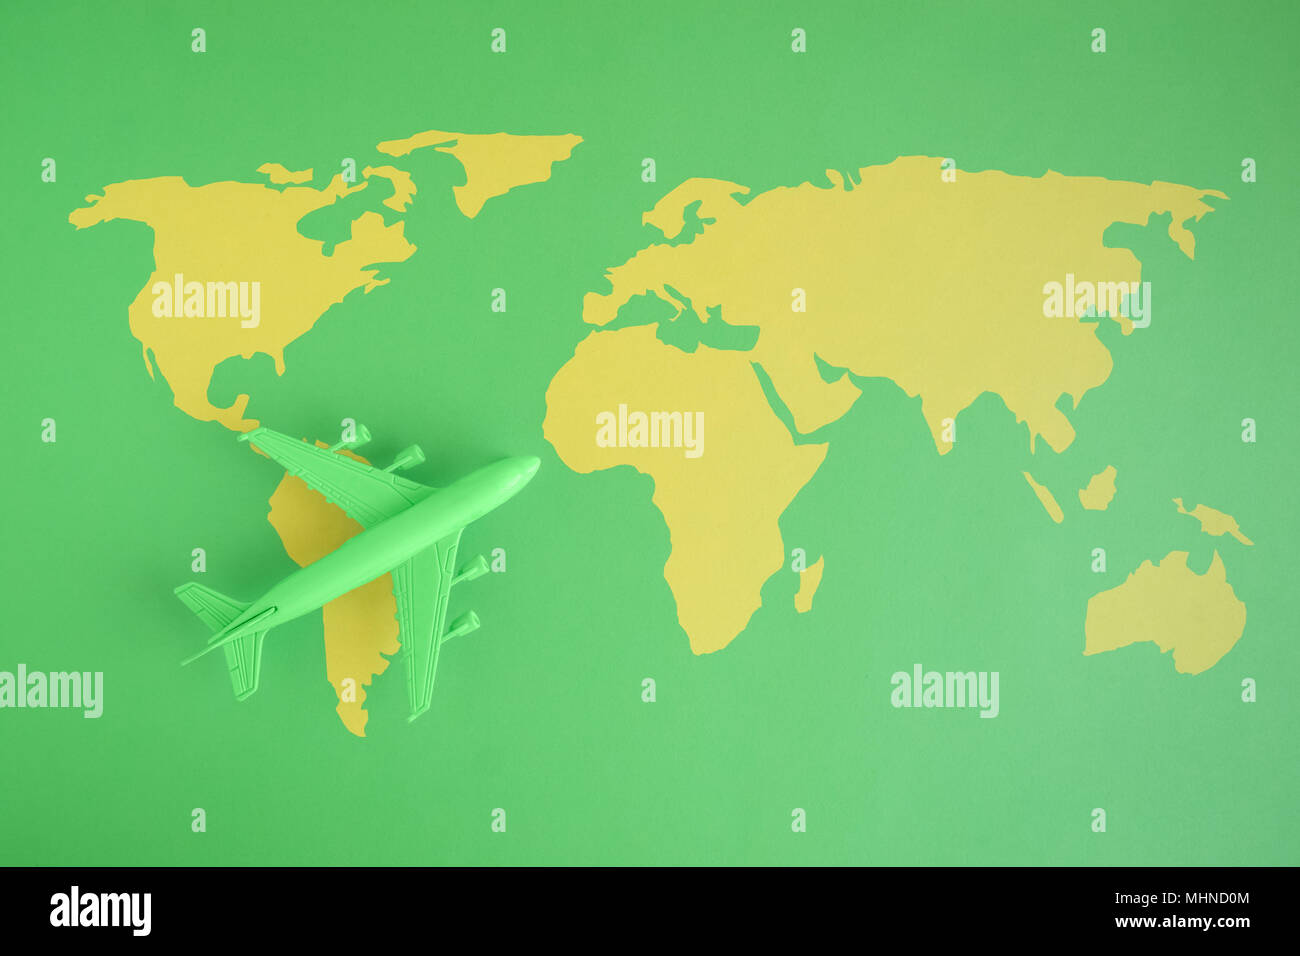 Simple flat map of world with countries stock photos simple flat flat lay of miniature toy airplane on green background with world map minimal trip and travel gumiabroncs Image collections